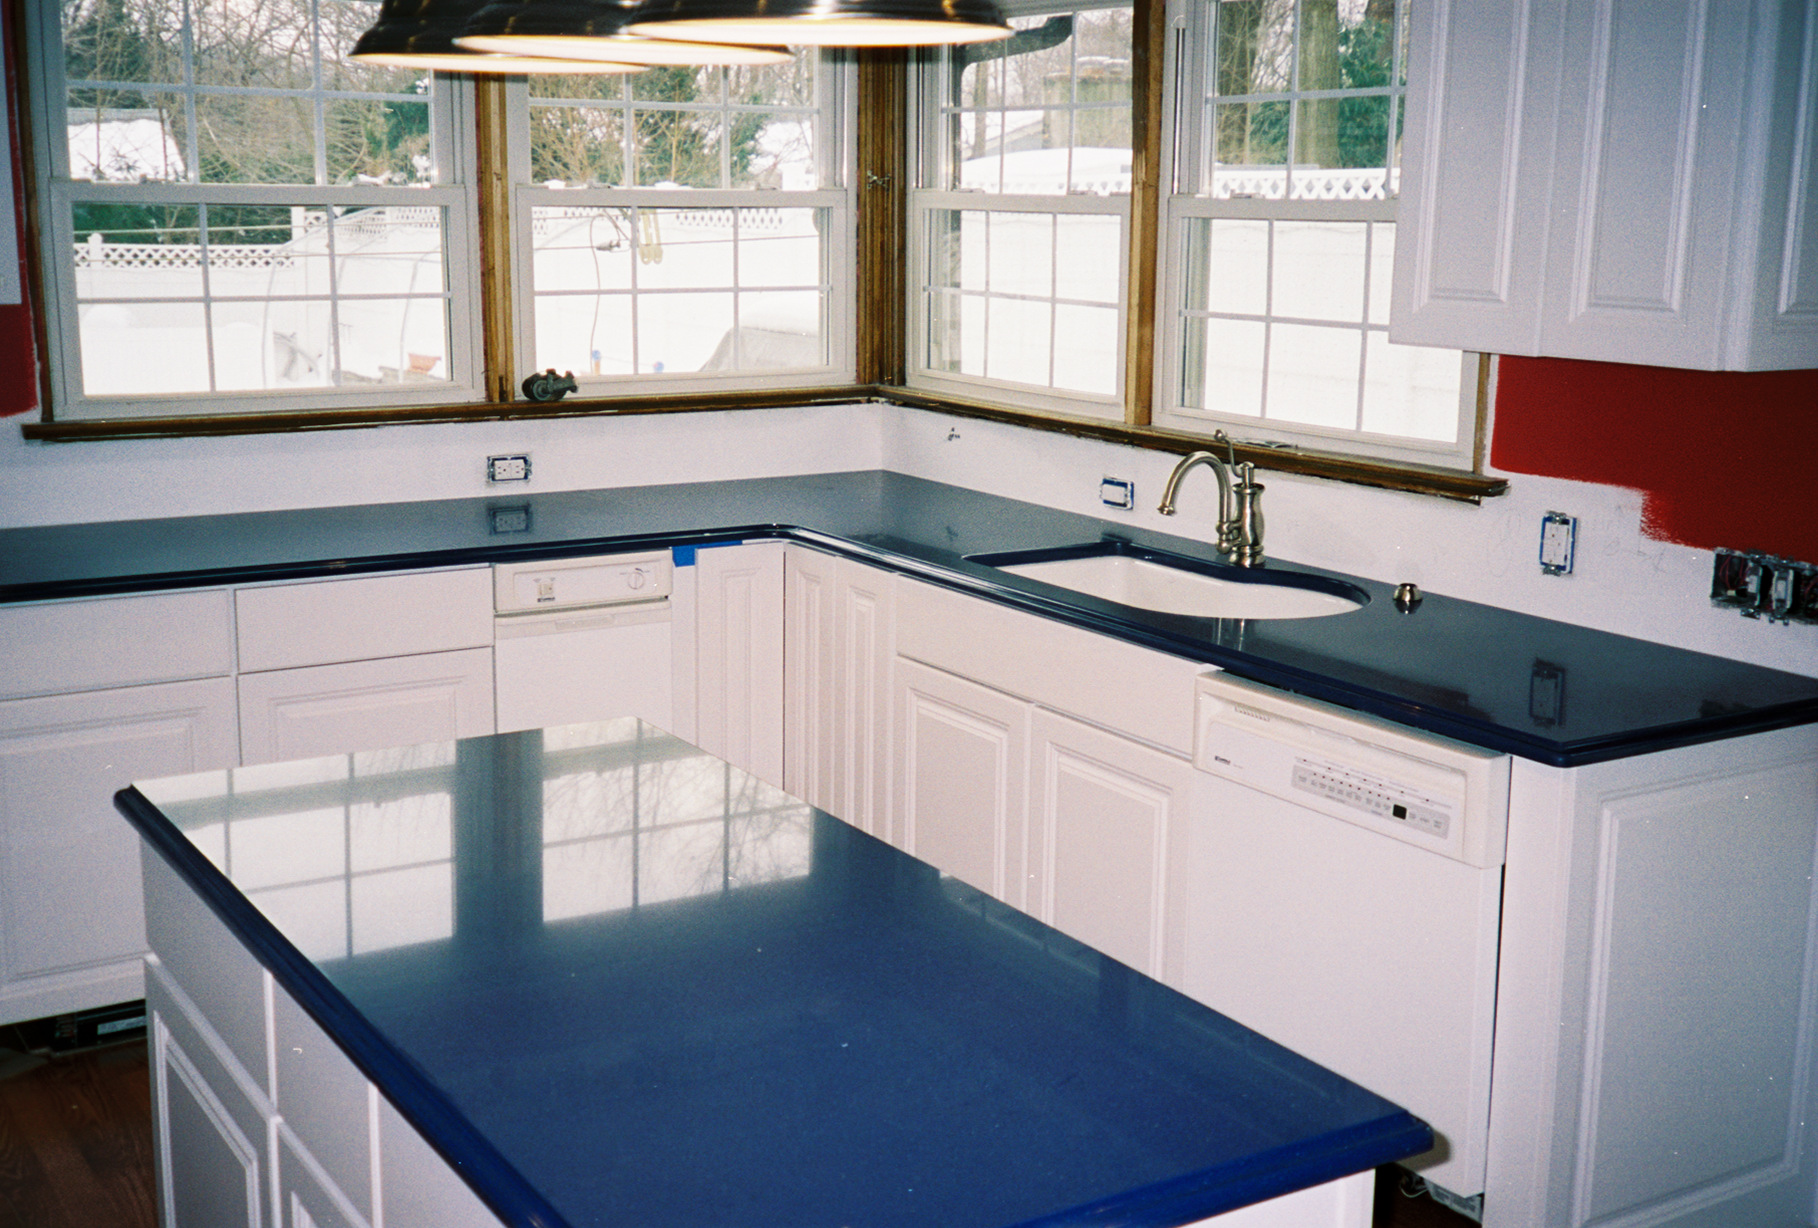 countertops nice countertop design blue quartz with new